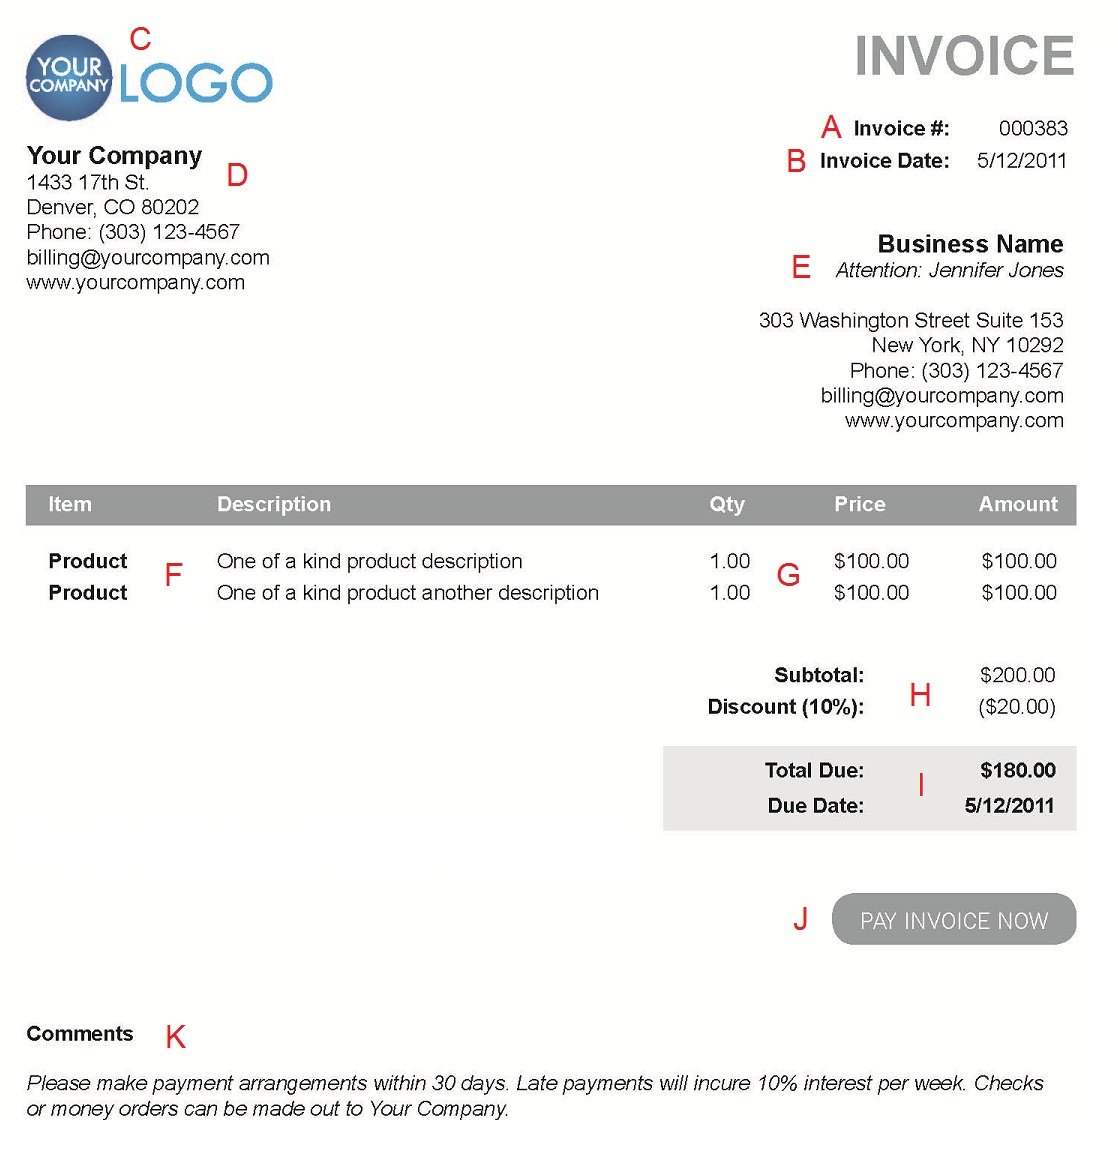 Poorboyzjeepclubus  Pretty The  Different Sections Of An Electronic Payment Invoice With Heavenly A  With Delightful Make An Invoice In Word Also Magento Invoice In Addition Blank Invoice Sheet And Invoice Description As Well As Invoice In Arrears Additionally Php Invoice From Paysimplecom With Poorboyzjeepclubus  Heavenly The  Different Sections Of An Electronic Payment Invoice With Delightful A  And Pretty Make An Invoice In Word Also Magento Invoice In Addition Blank Invoice Sheet From Paysimplecom